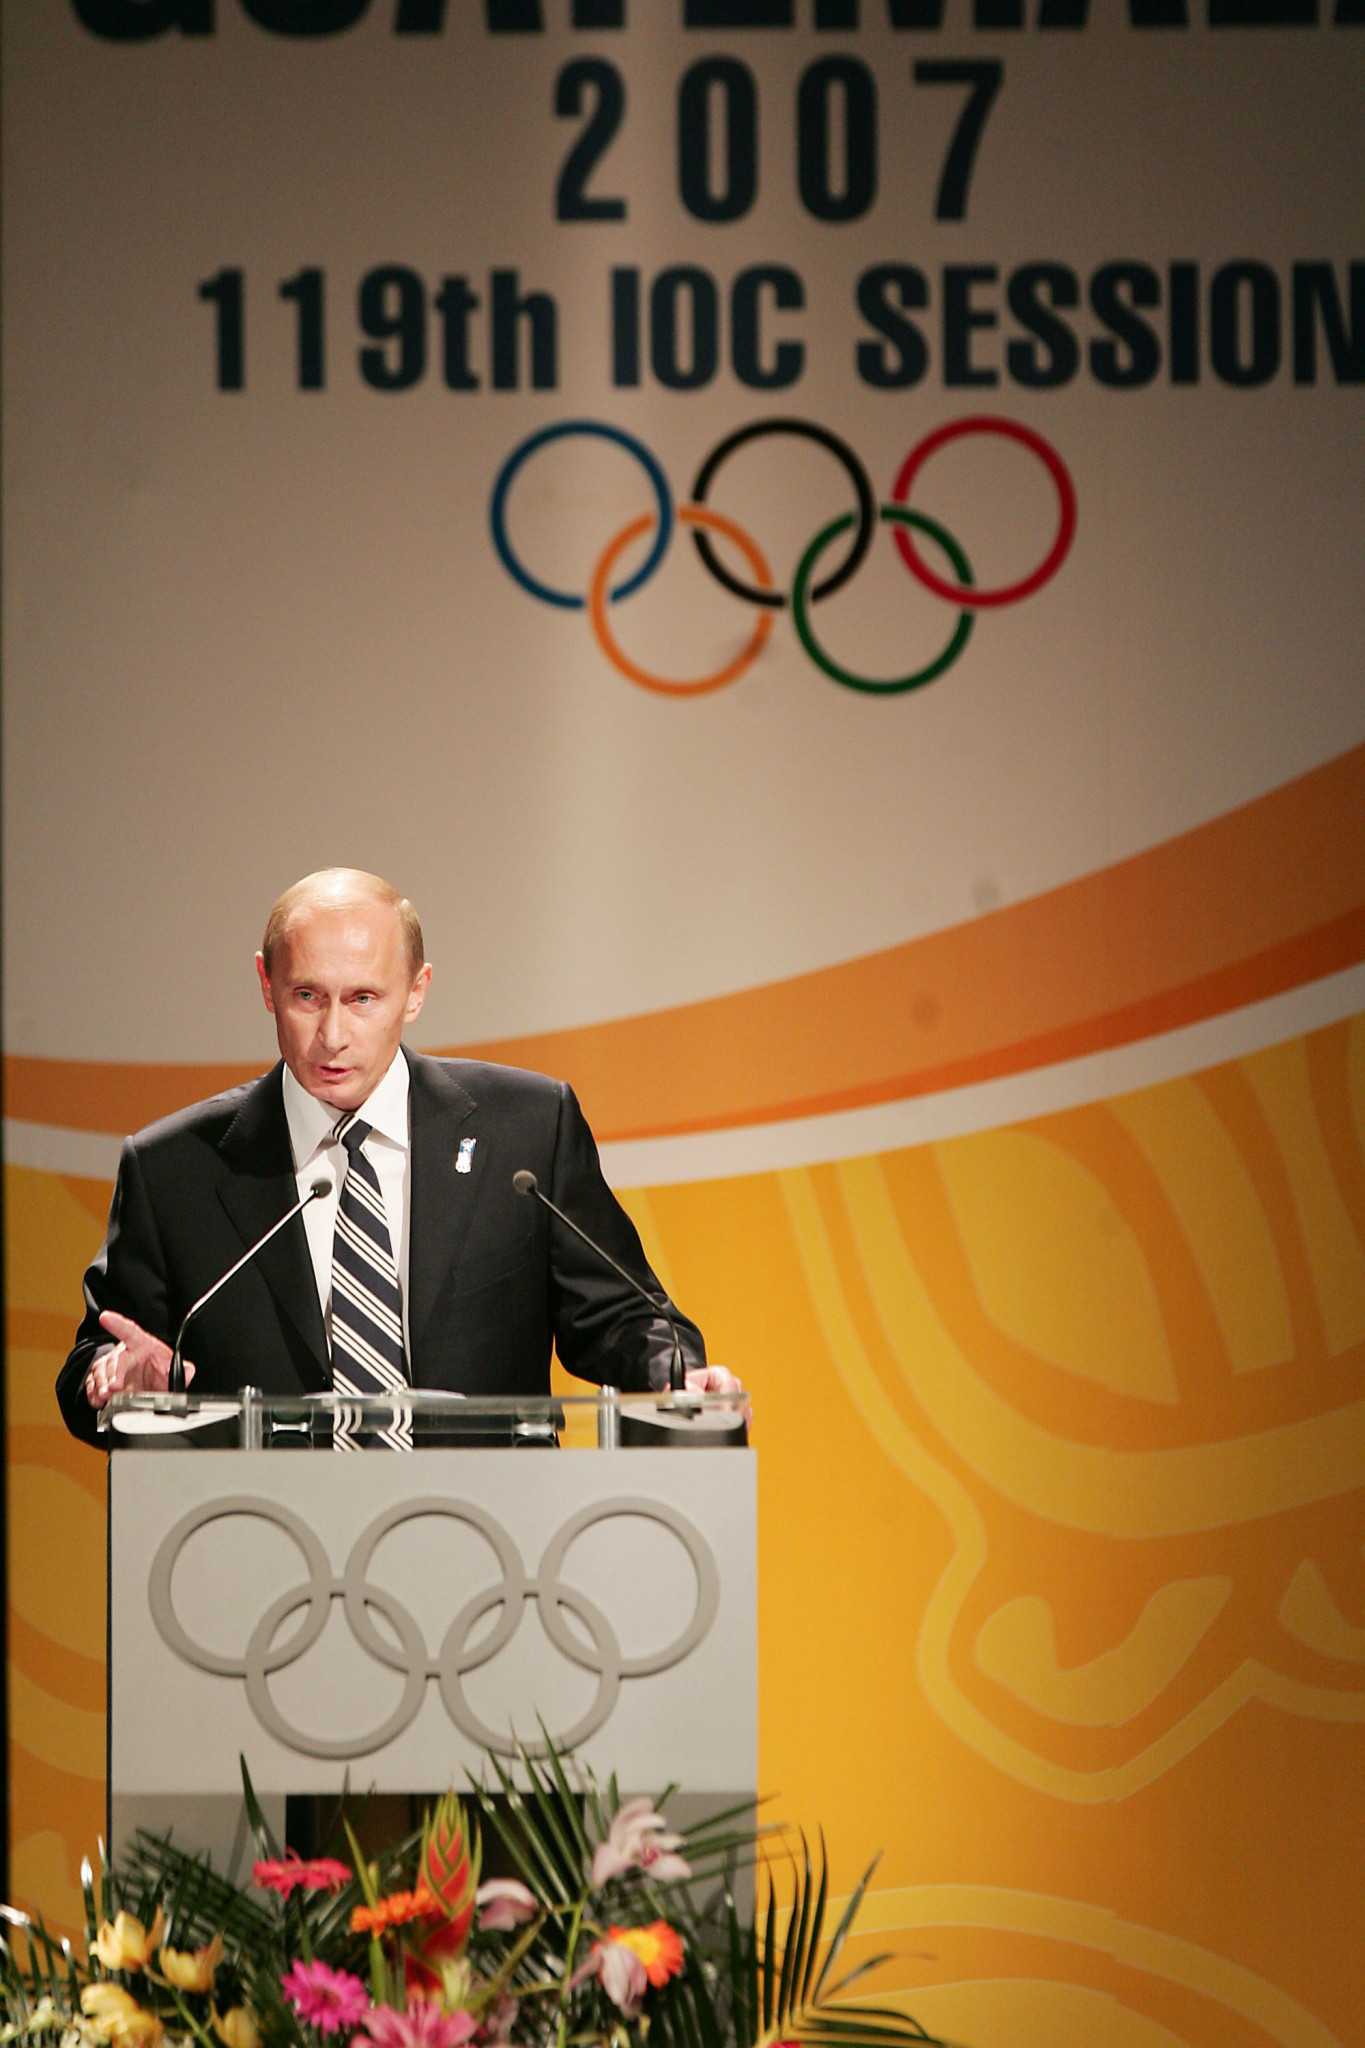 Vladimir Putin pictured speaking in favour of Sochi at the 2007 IOC Session in Guatemala ©Getty Images